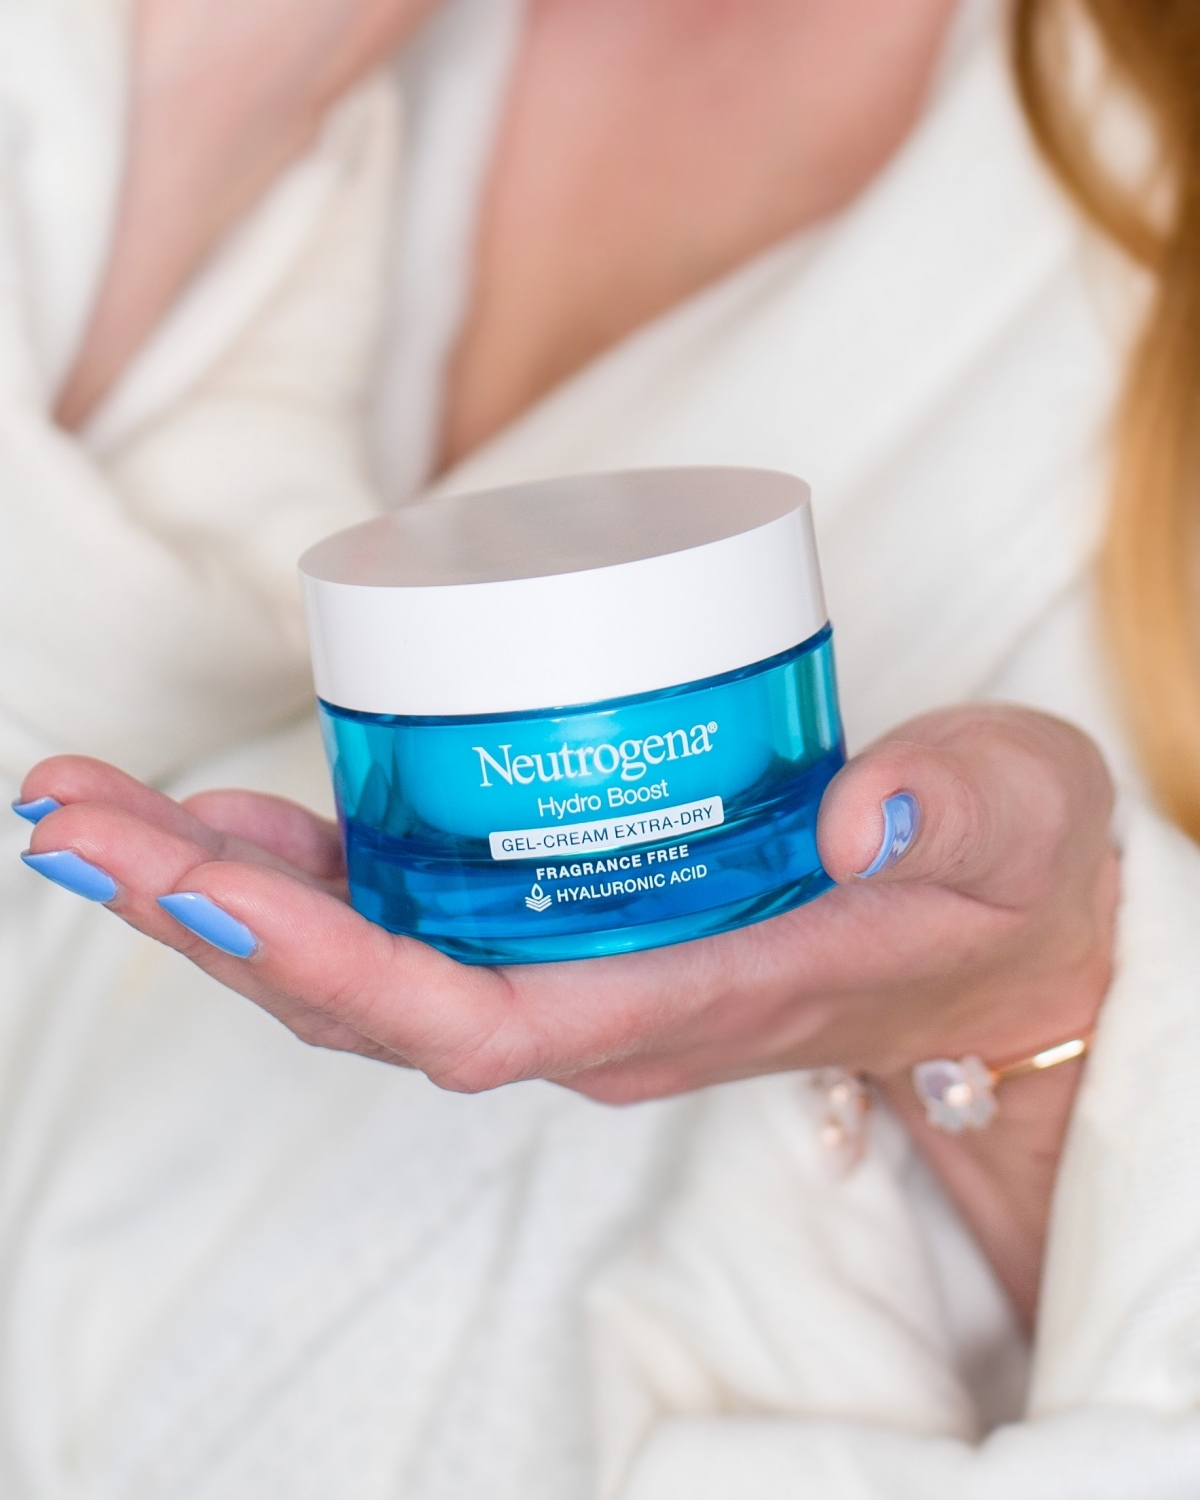 Say goodbye to dull & tired skin with Neutrogena at Rite Aid